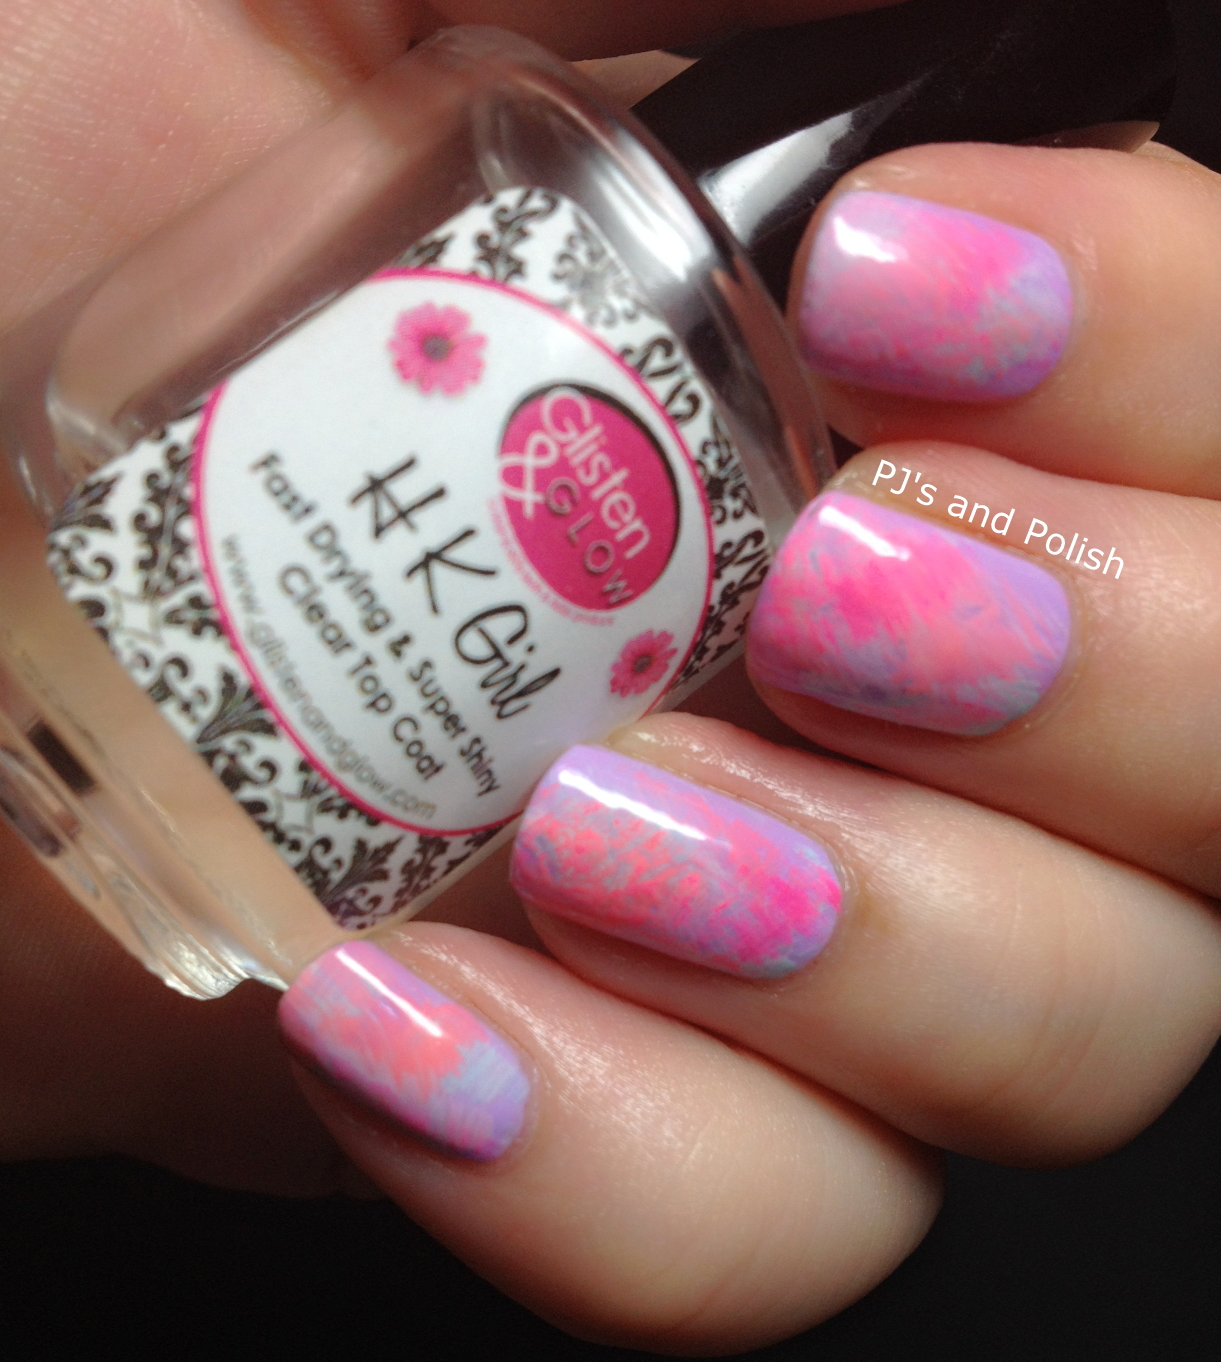 China Glaze City Flourish Peonies & Park Ave Nail Art Lotus Begin At Vase Value Spring In My Step Petal To The Metal In A Lily Bit Konad MoYou Stamping HK Girl